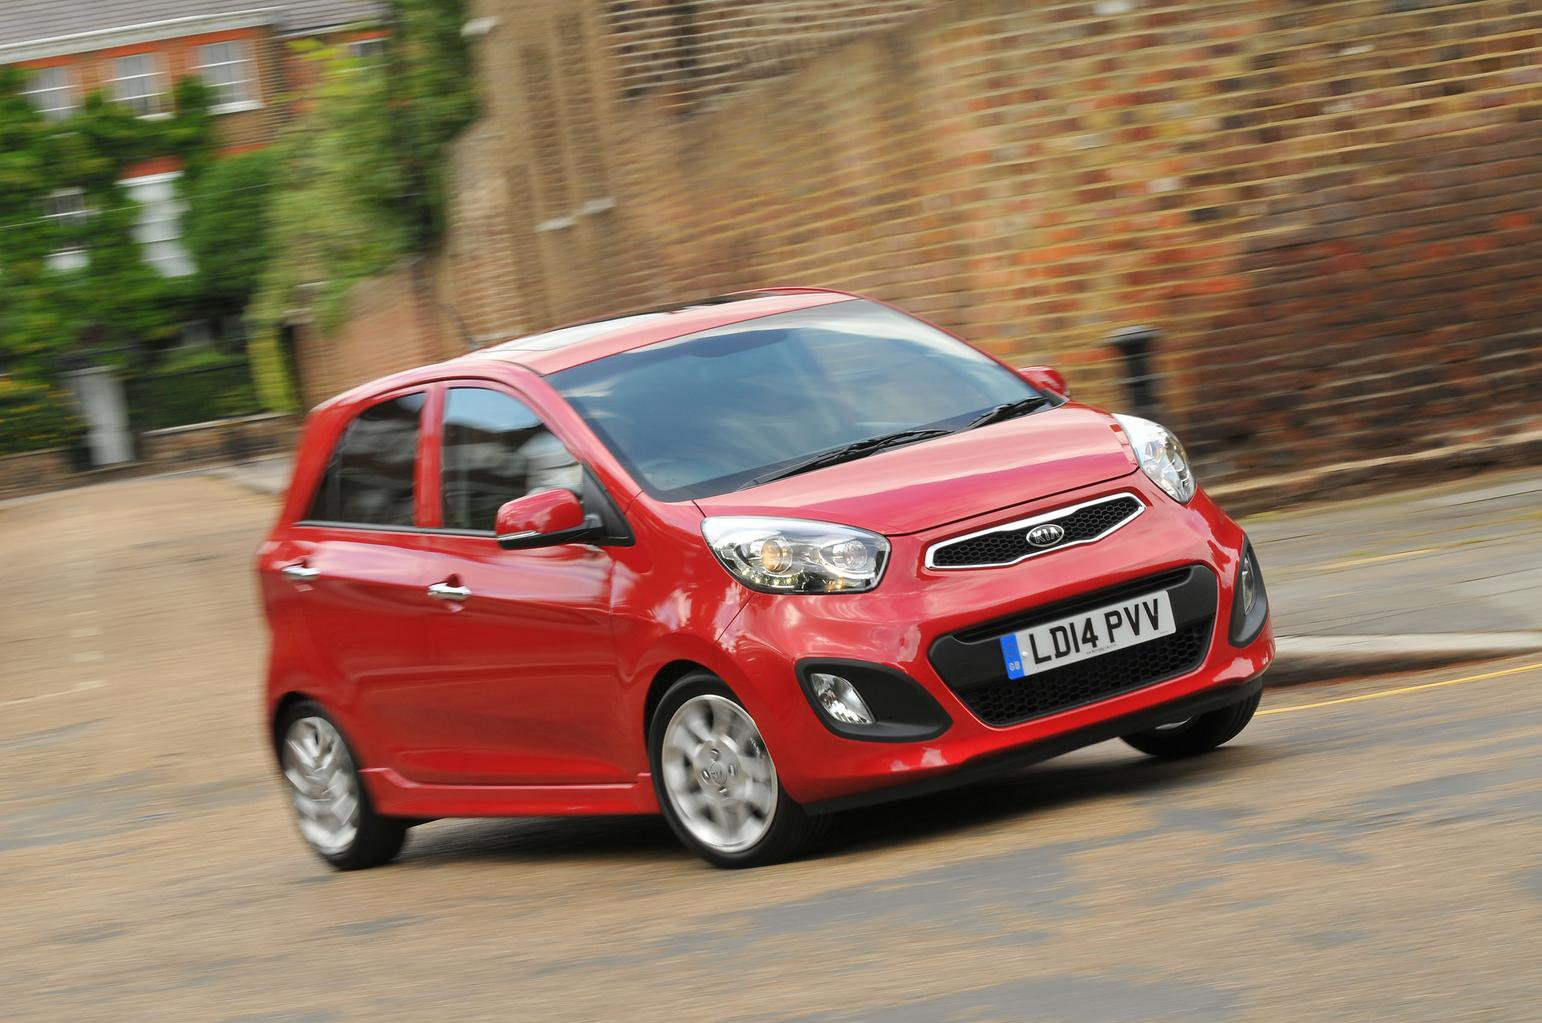 Cars deals for less than £110 per month